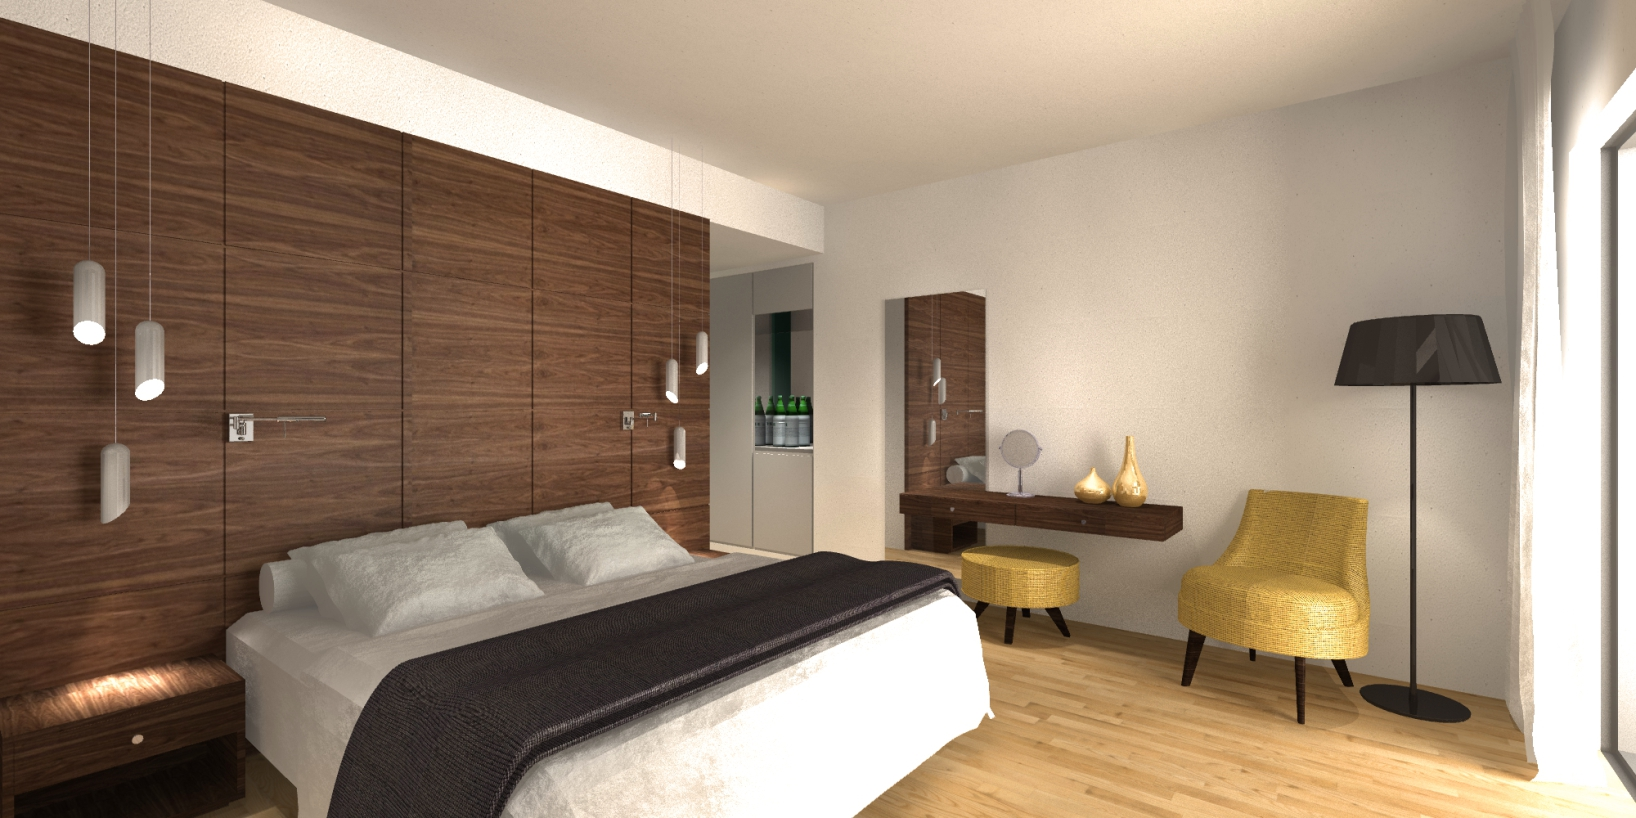 An island hotel room interior for Room interior